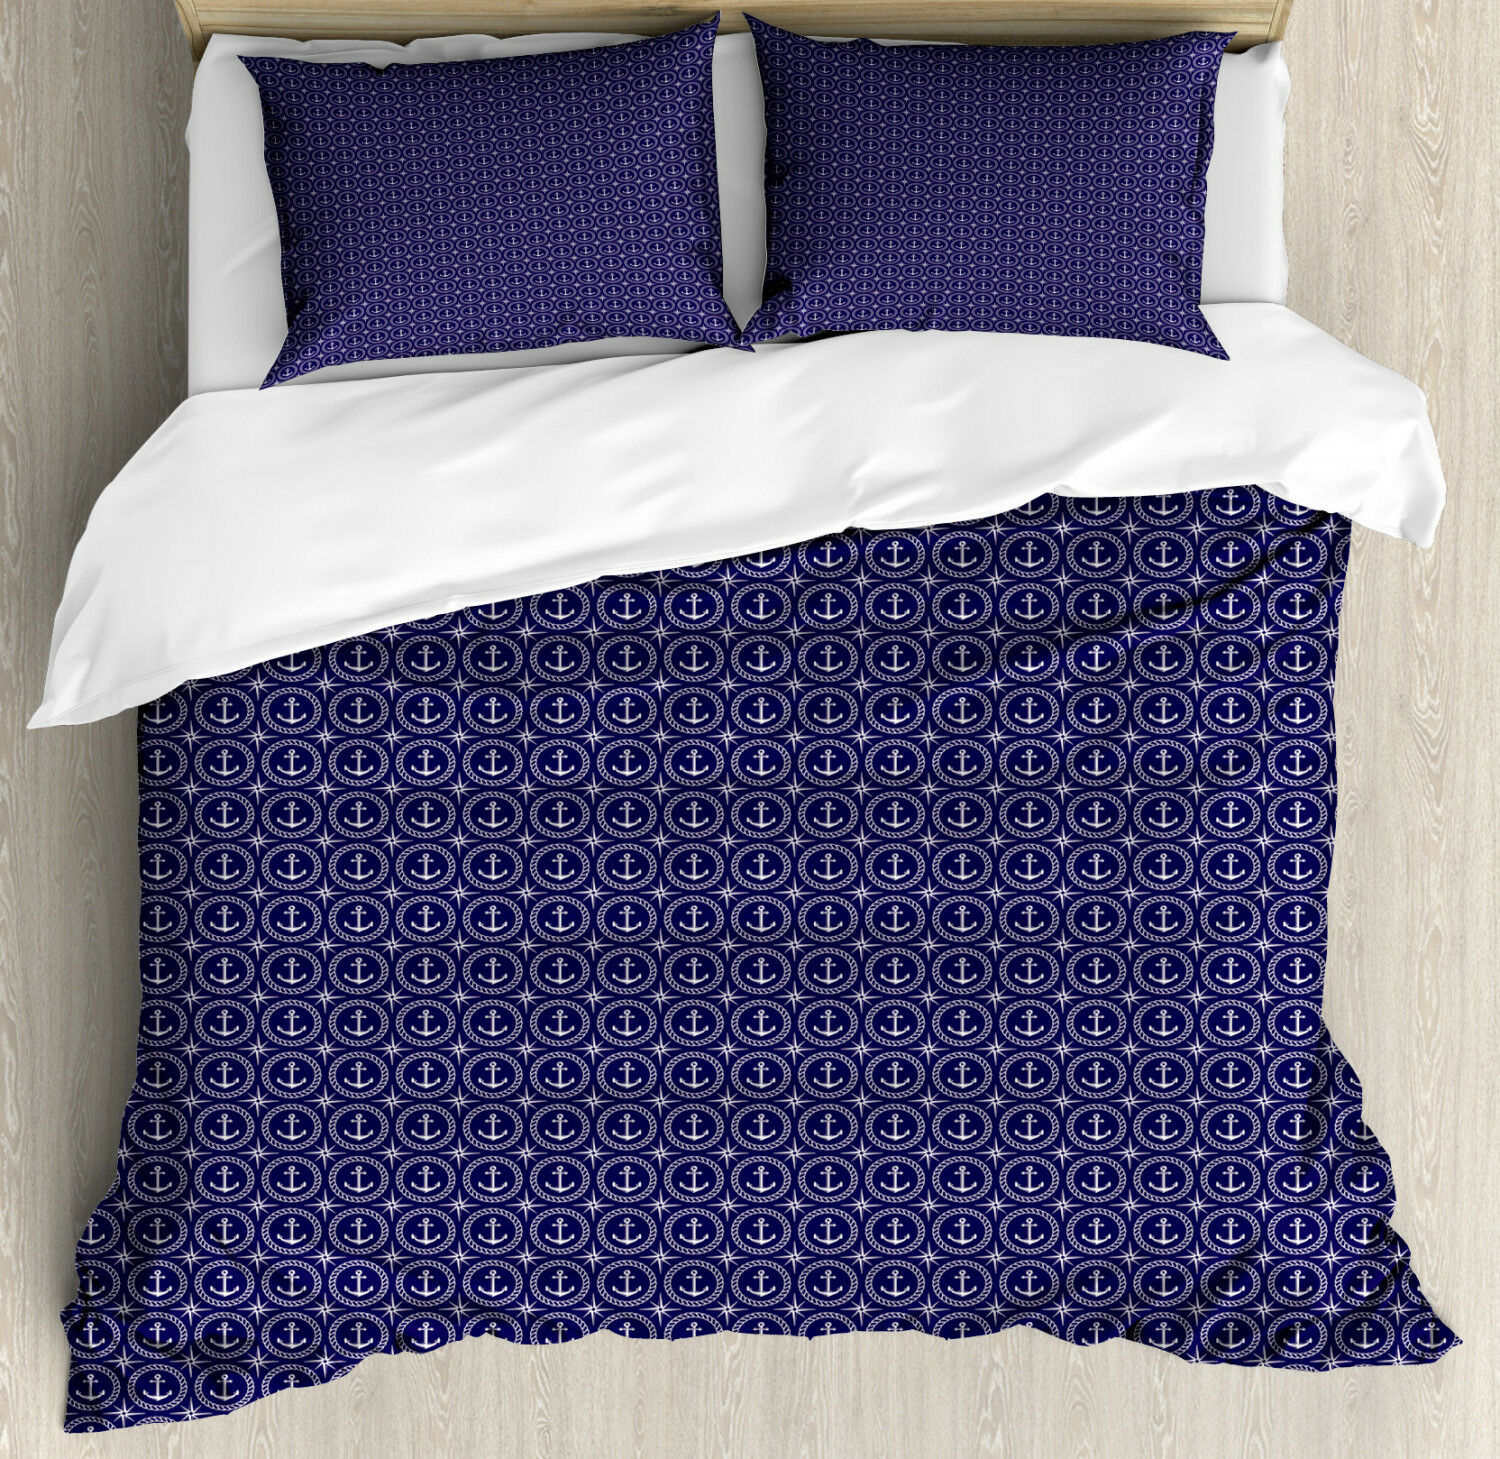 Navy bluee Duvet Cover Set with Pillow Shams Windpink and Rope Print